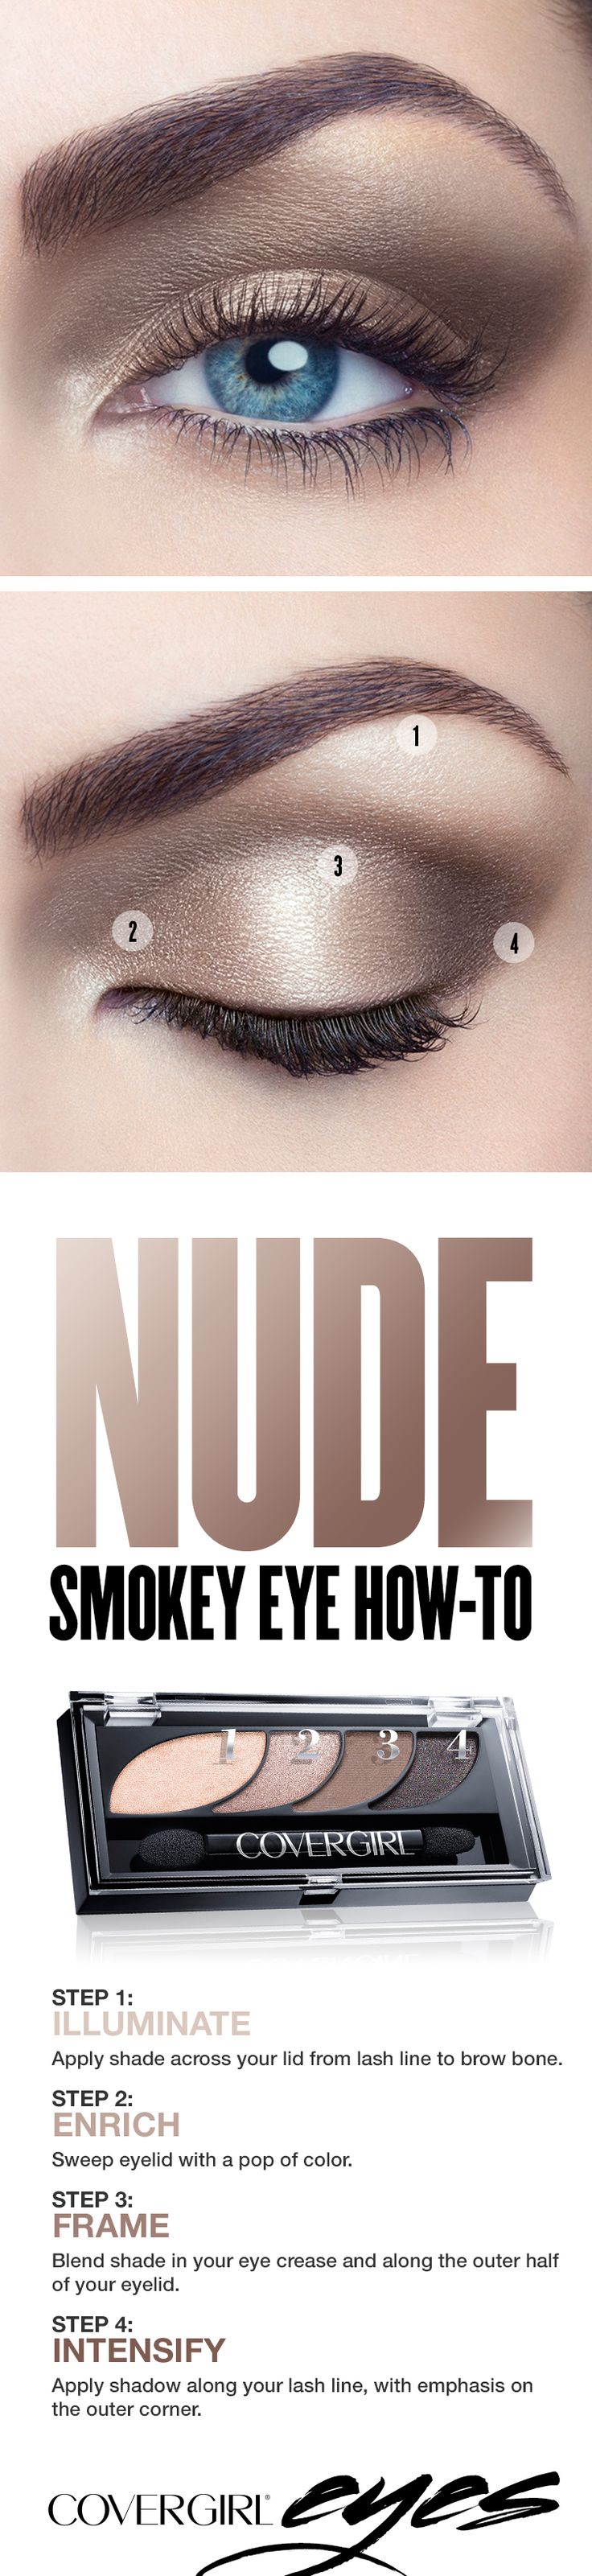 Try our simple step-by-step tutorial this holiday season for a natural nude smokey eye using COVERGIRL Eyeshadow Quads in Notice Me Nudes. The light, neutral tones in this palette make blue eyes pop! Perfect for Christmas or New Year's Eve parties - pair with a glam red lip to complete the look.